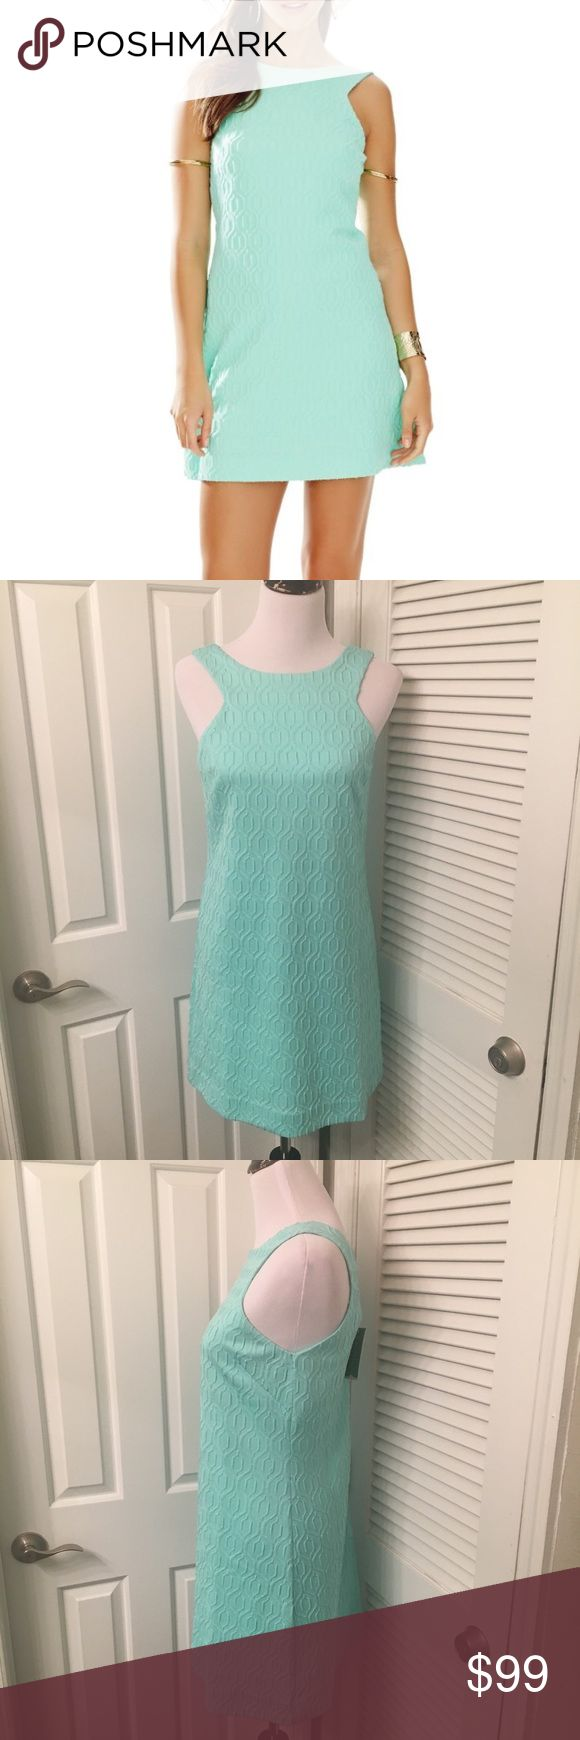 NWT Lilly Pulitzer Mango Shift Lilly Pulitzer Mango Shift Dress retro Jacquard metallic knit. Has a natural waist to hem  color is similar to a mint green. It has beautiful stitch Work but the stitching is very delicate. Total length is approximately 34 in, across the Chest is approximately 16.5in Lilly Pulitzer Dresses